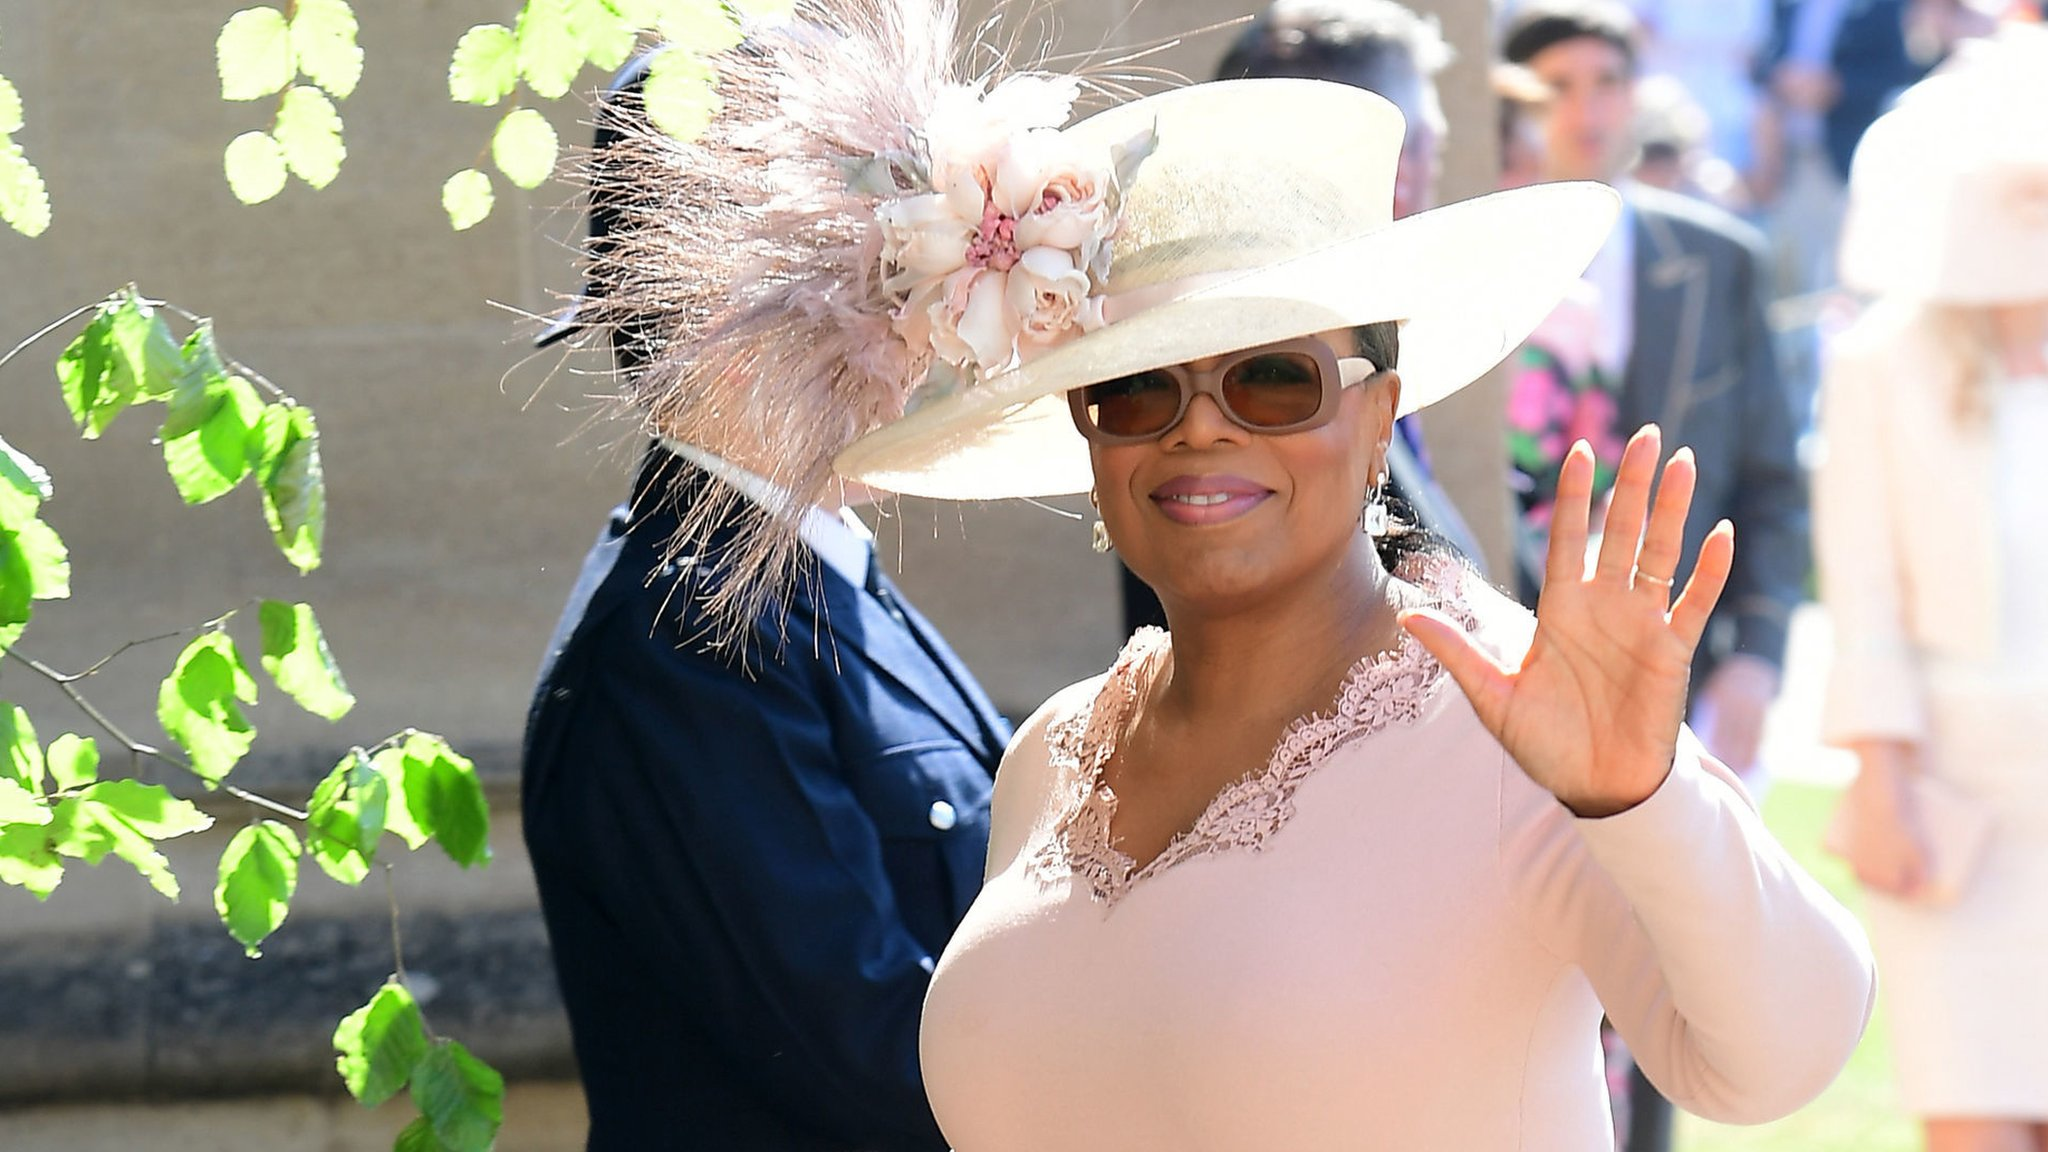 Quiz: What caused Oprah's quick change?